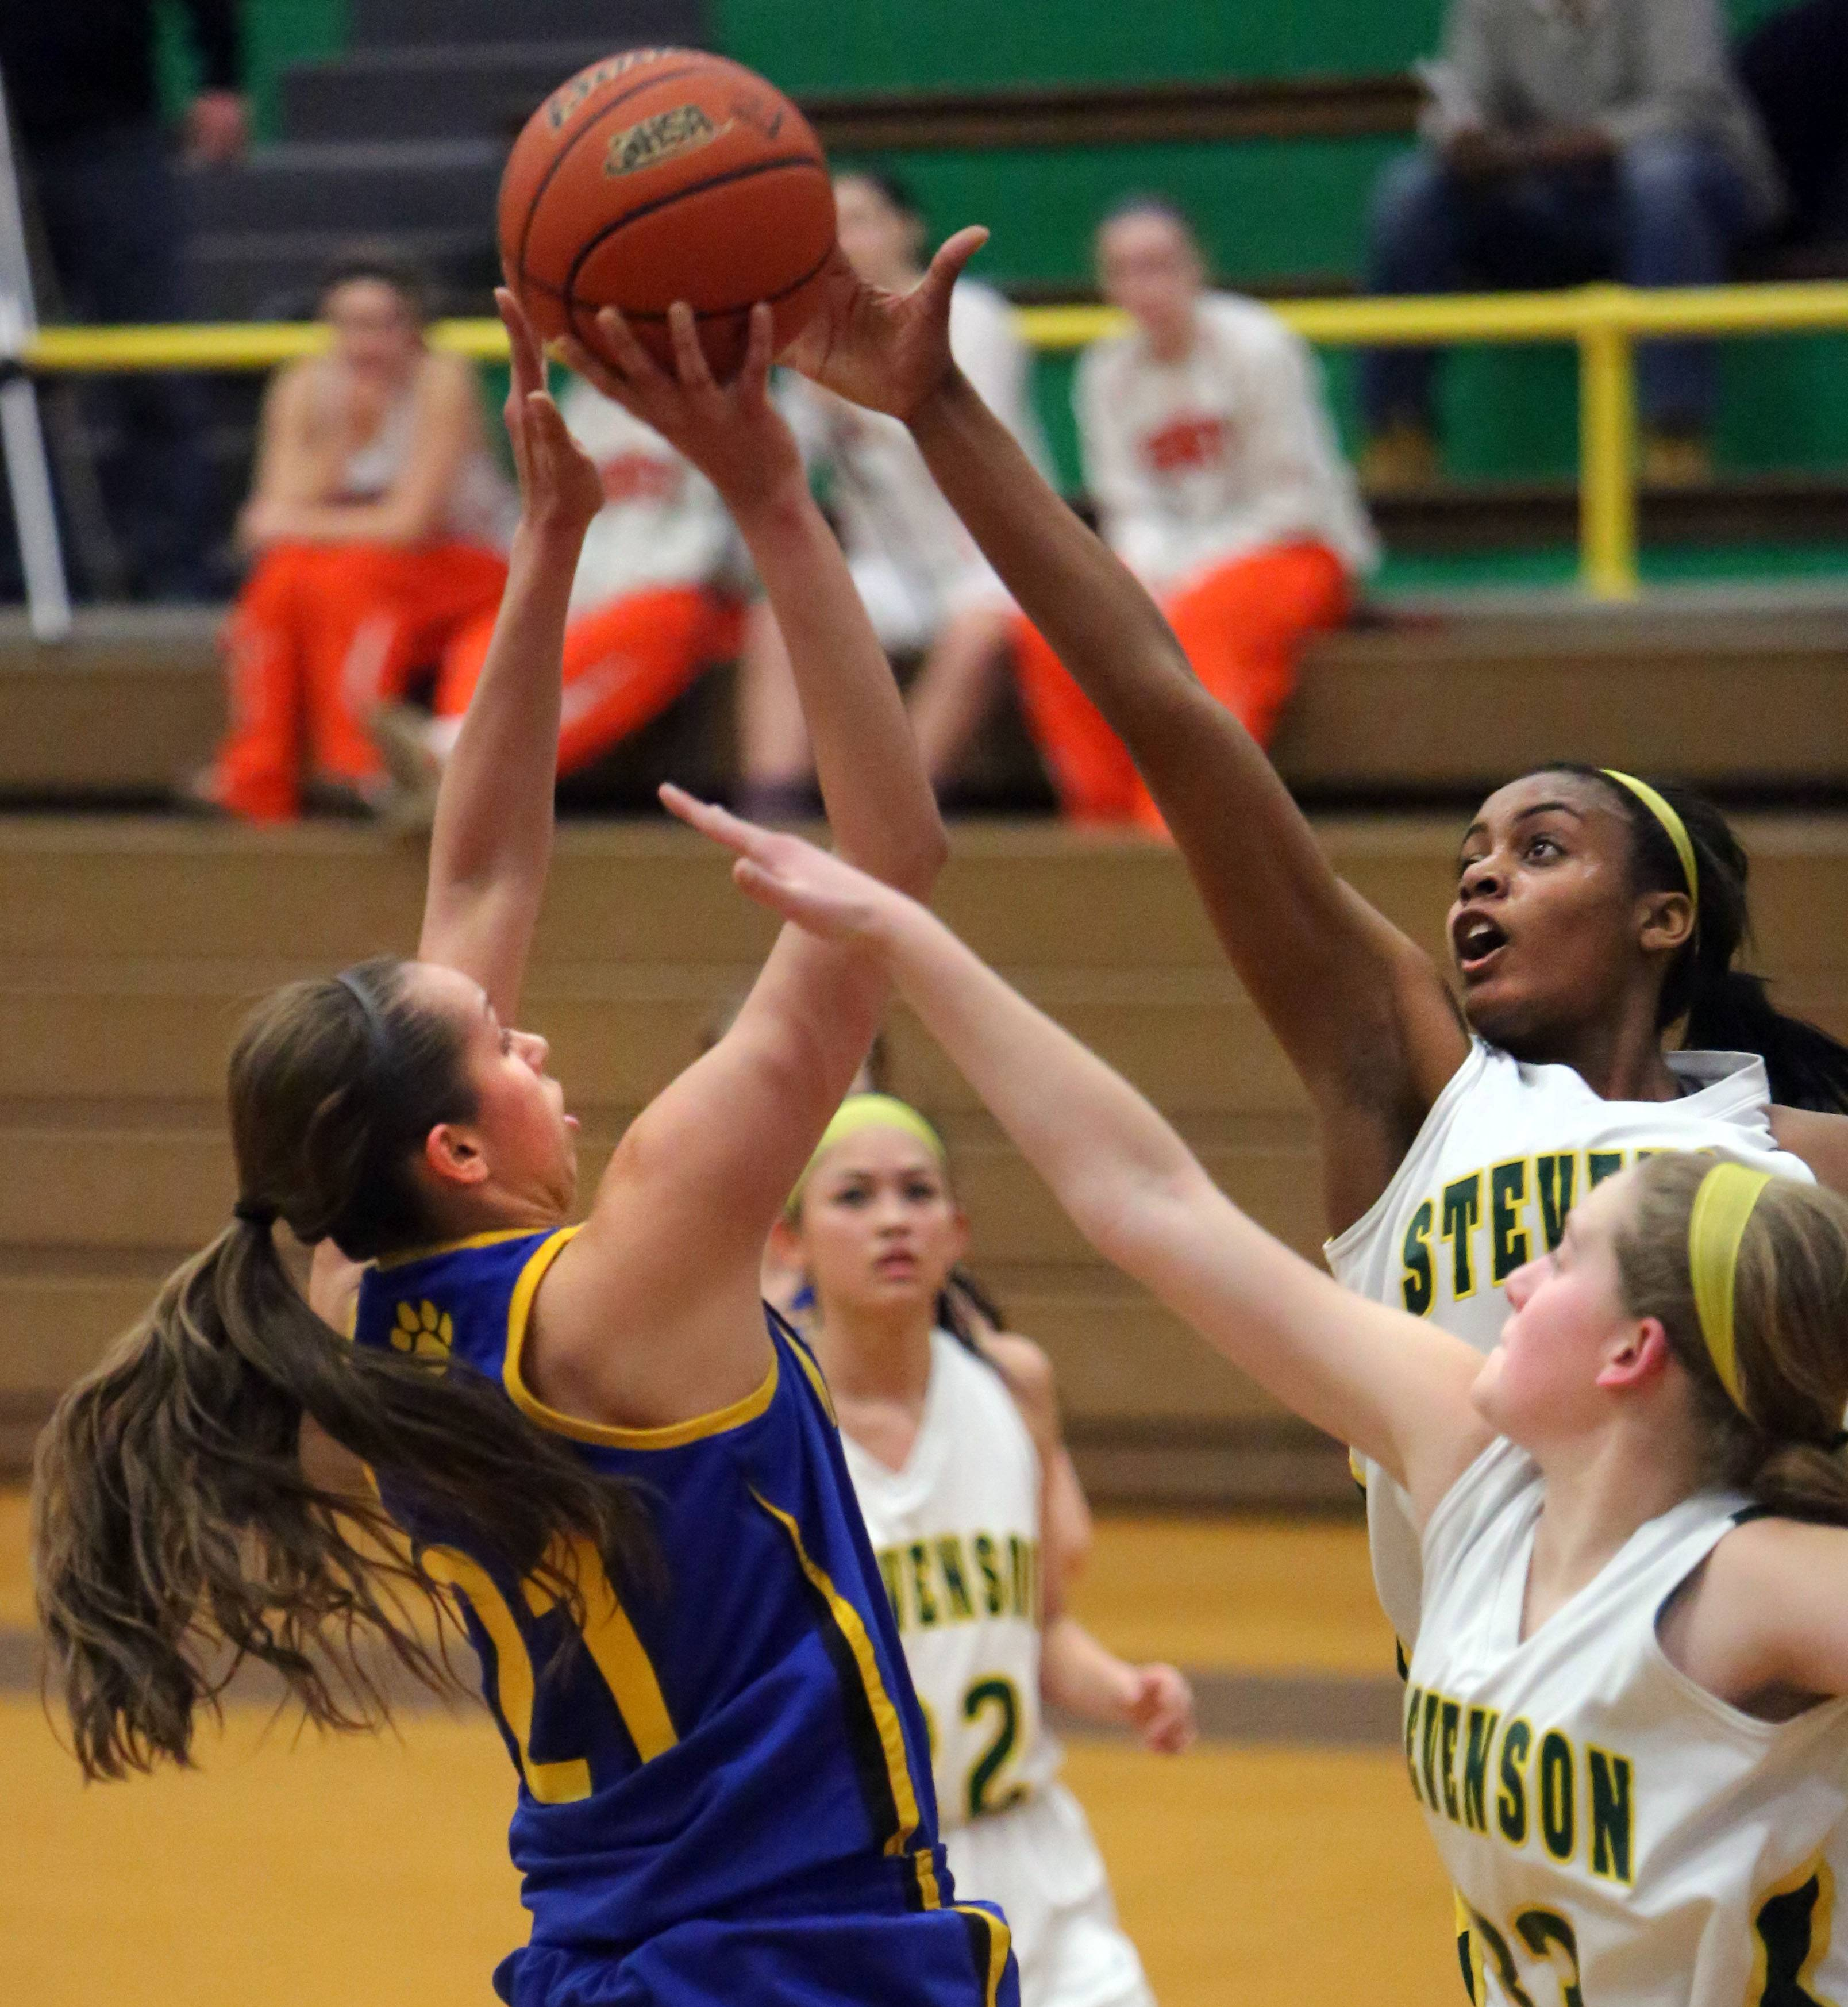 Wheeling's Deanna Kuzmanic, left, tries to shoot over Stevenson's Taylor Buford.